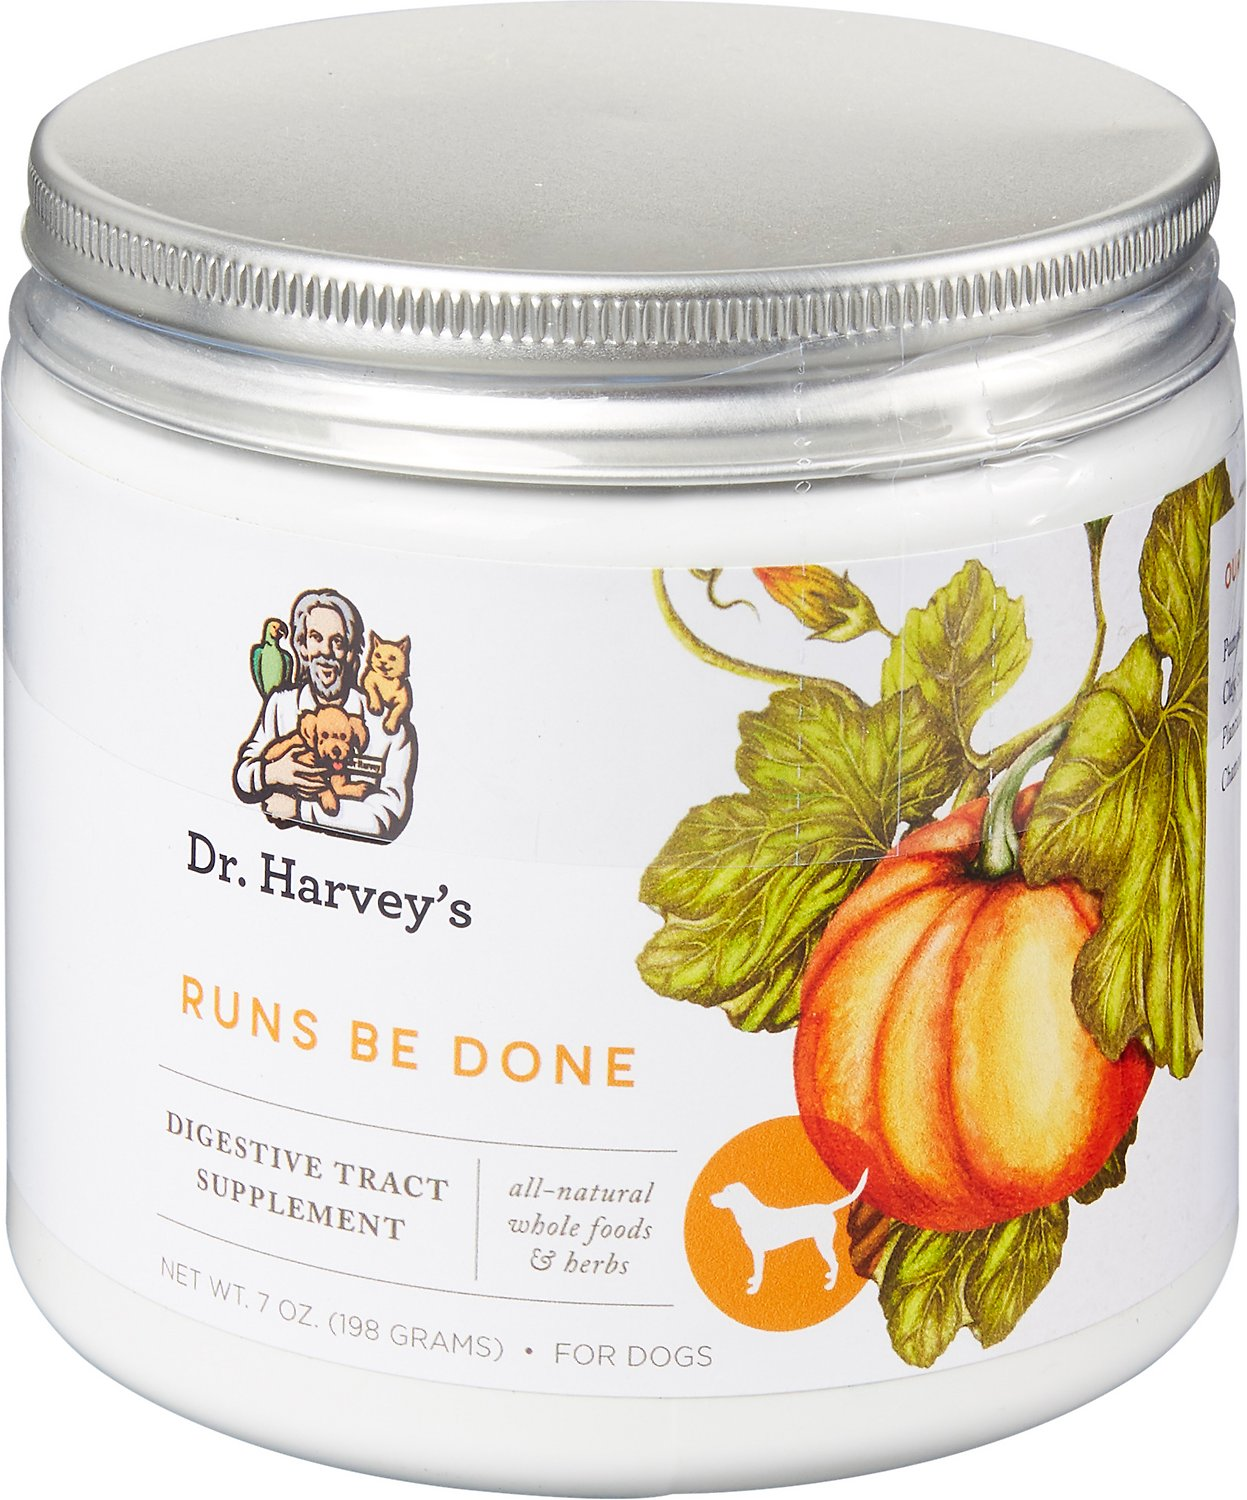 Dr. Harvey's Runs Be Done Digestive Tract Dog Supplement, 7-oz tin